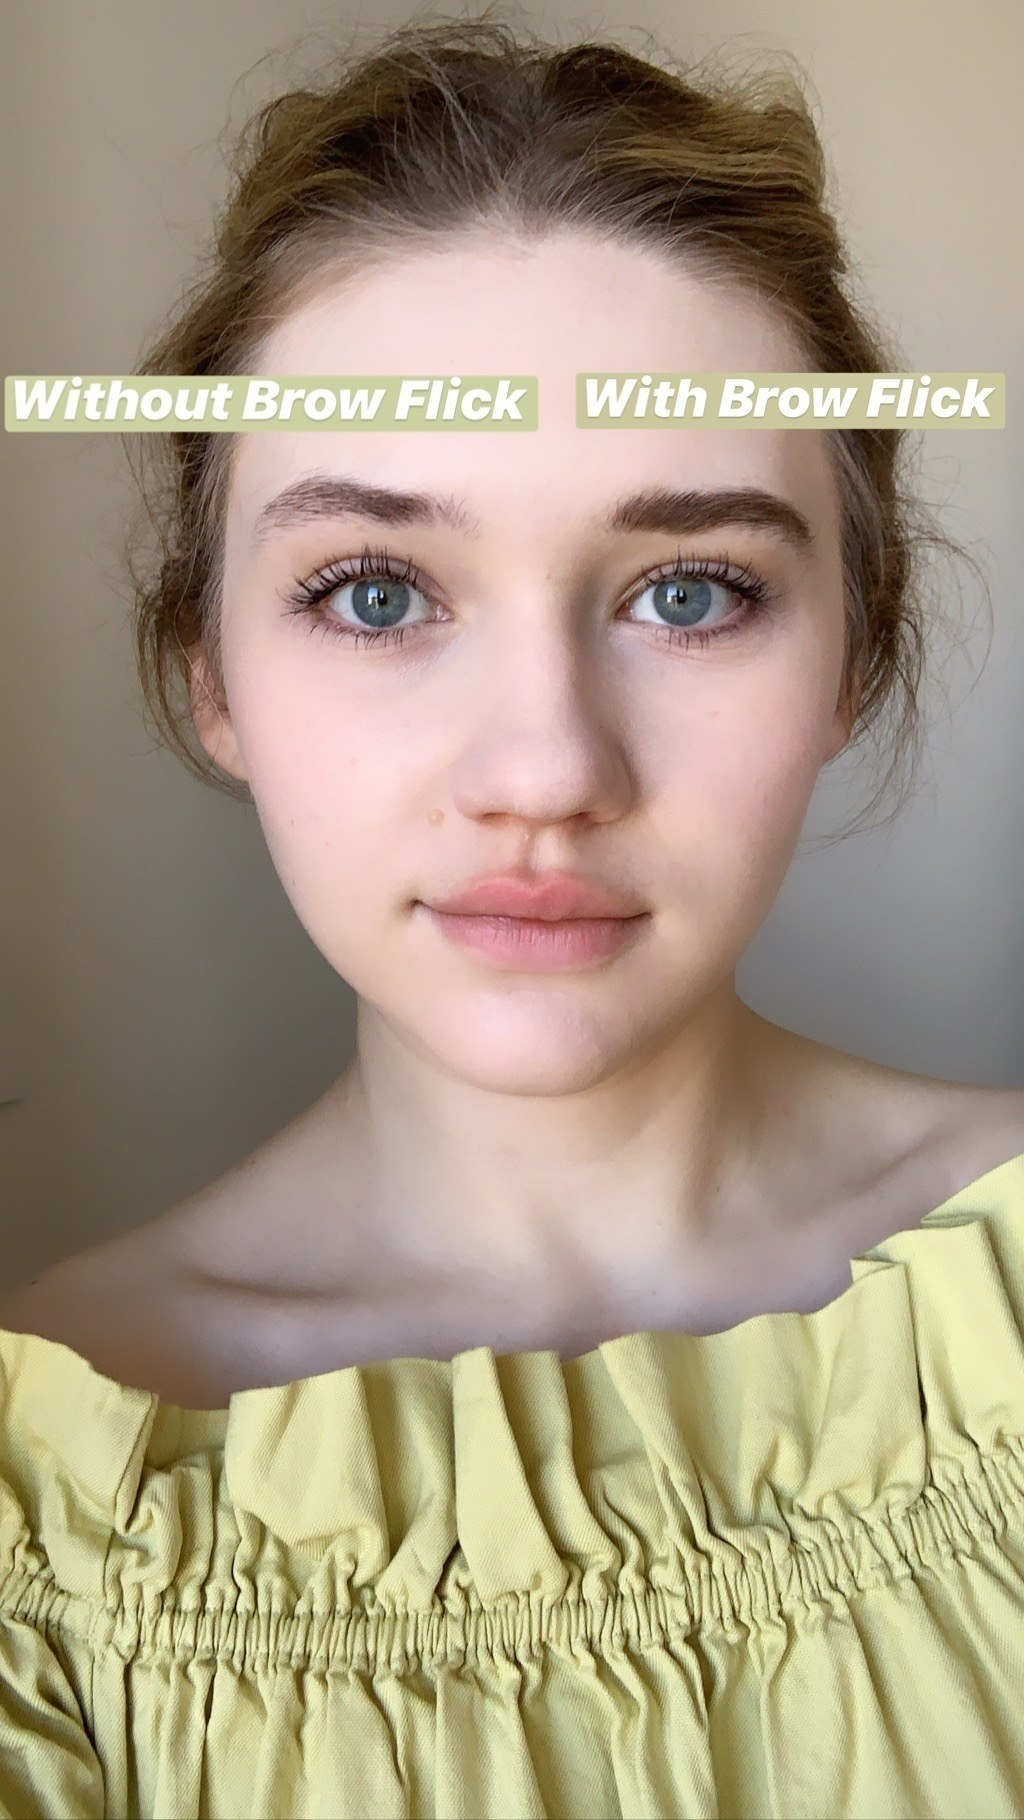 BuzzFeed Shopping reviewer showing one eyebrow bare and the other filled